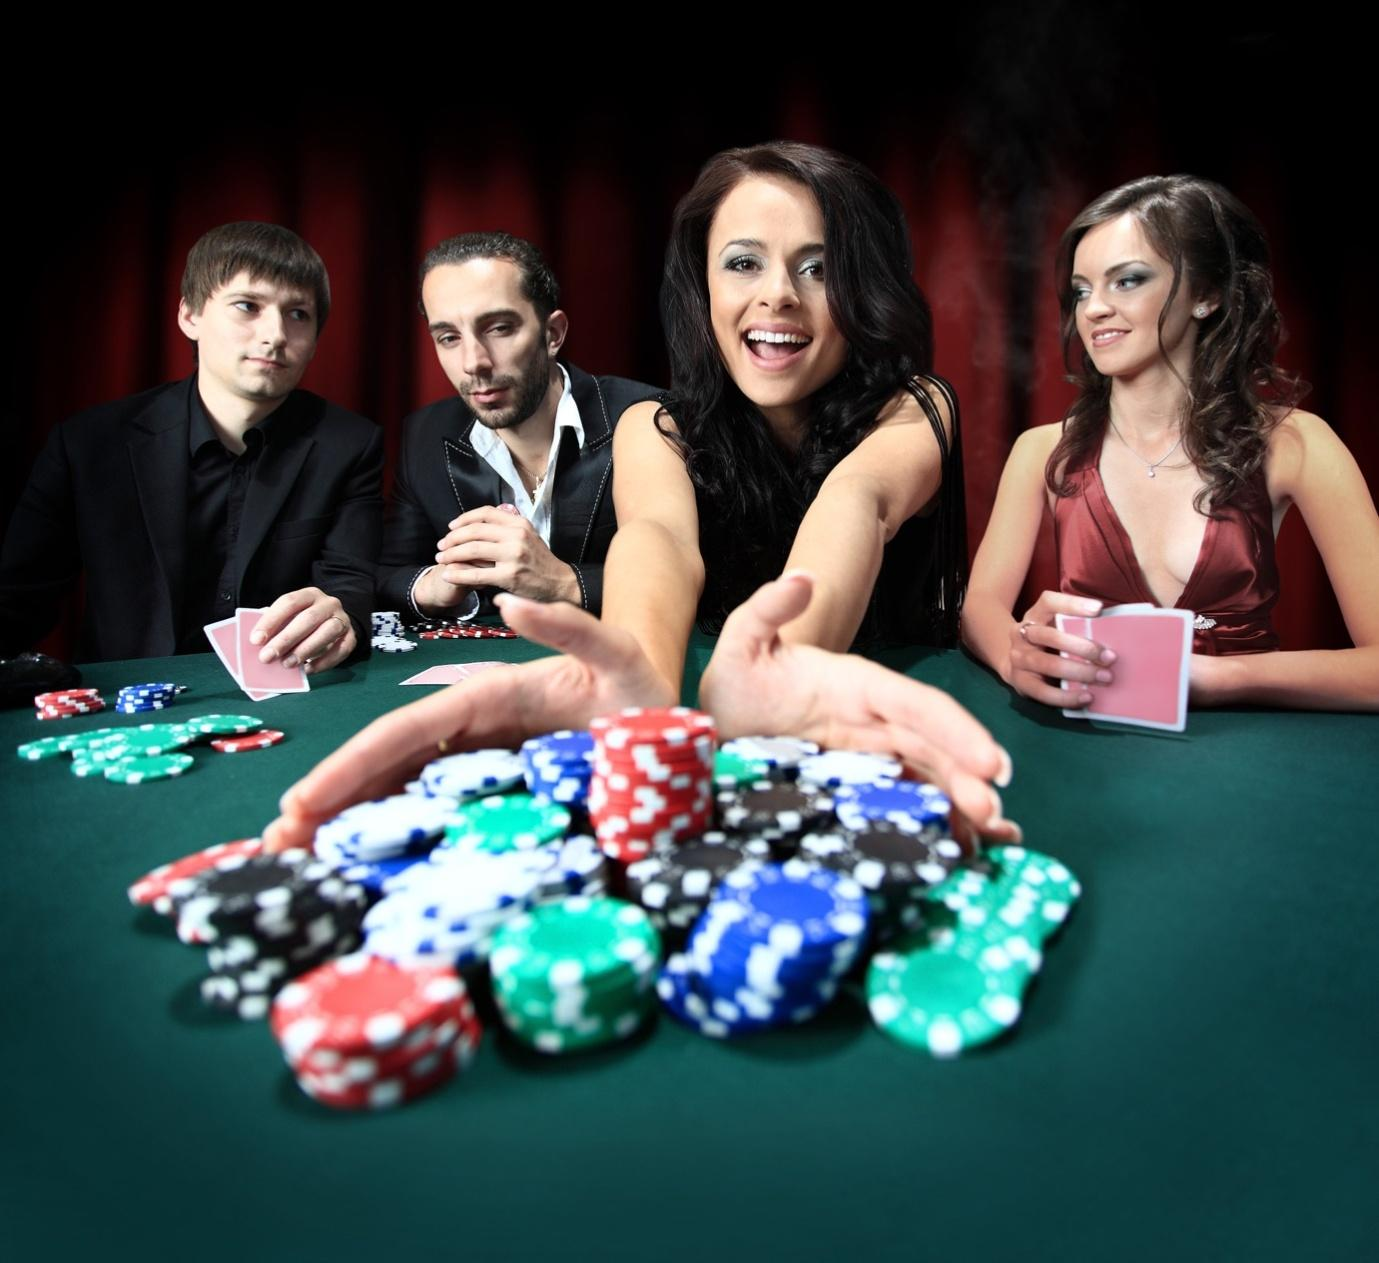 A group of people sitting around a table with a board game  Description automatically generated with low confidence